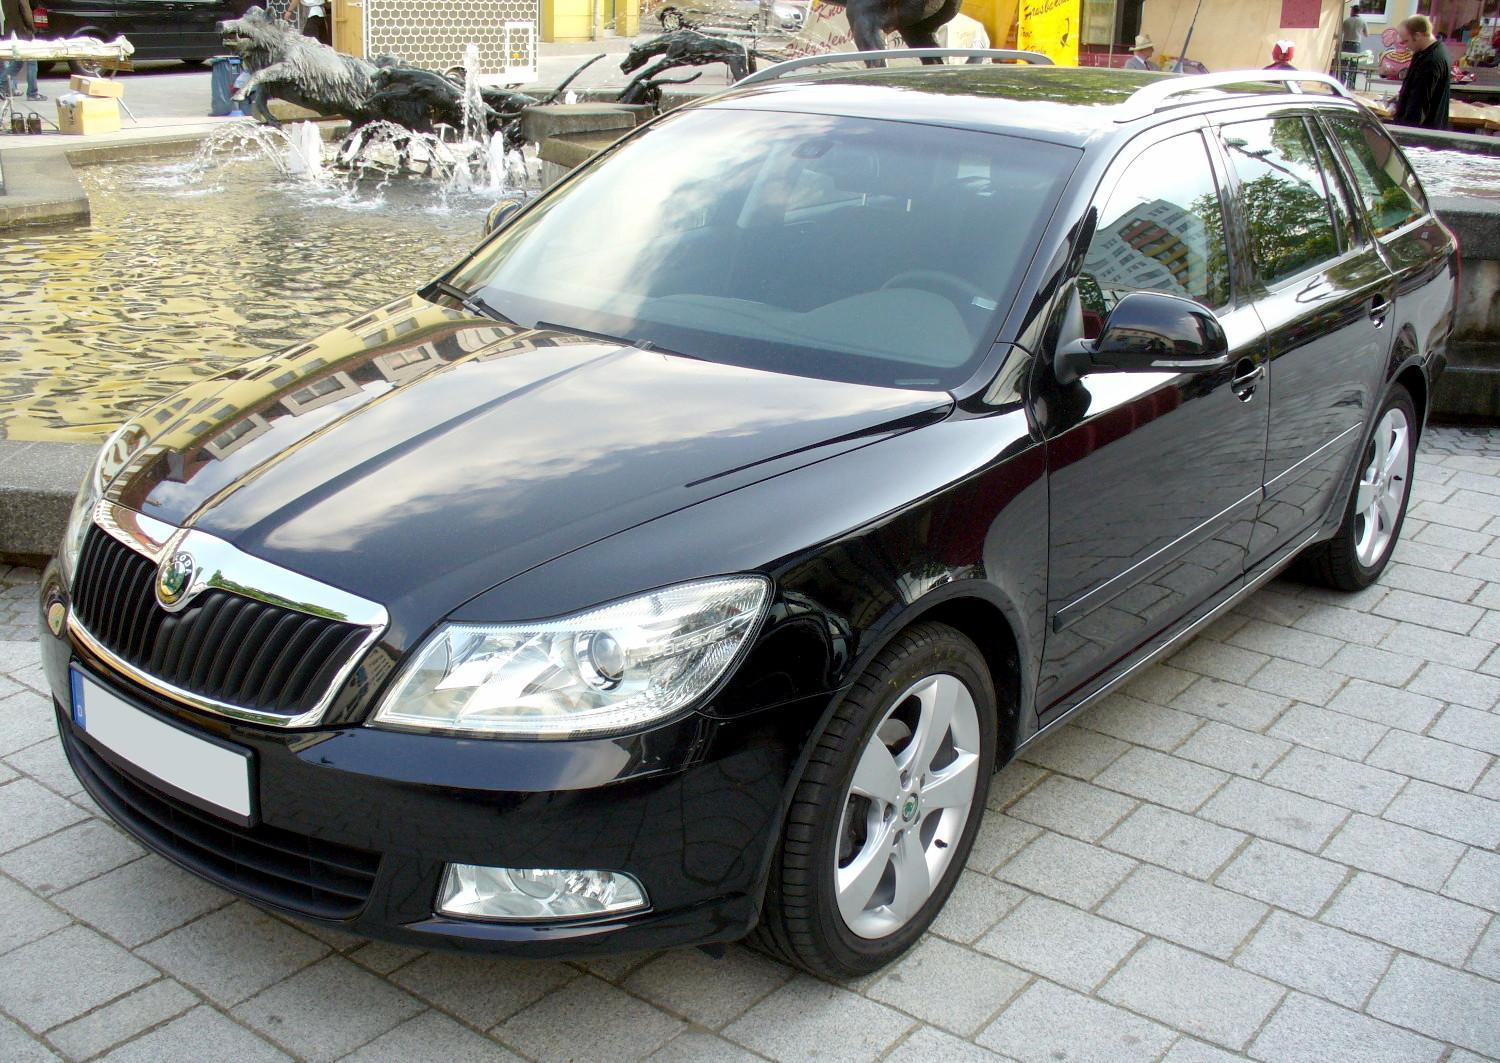 file skoda octavia ii combi facelift jpg wikimedia commons. Black Bedroom Furniture Sets. Home Design Ideas